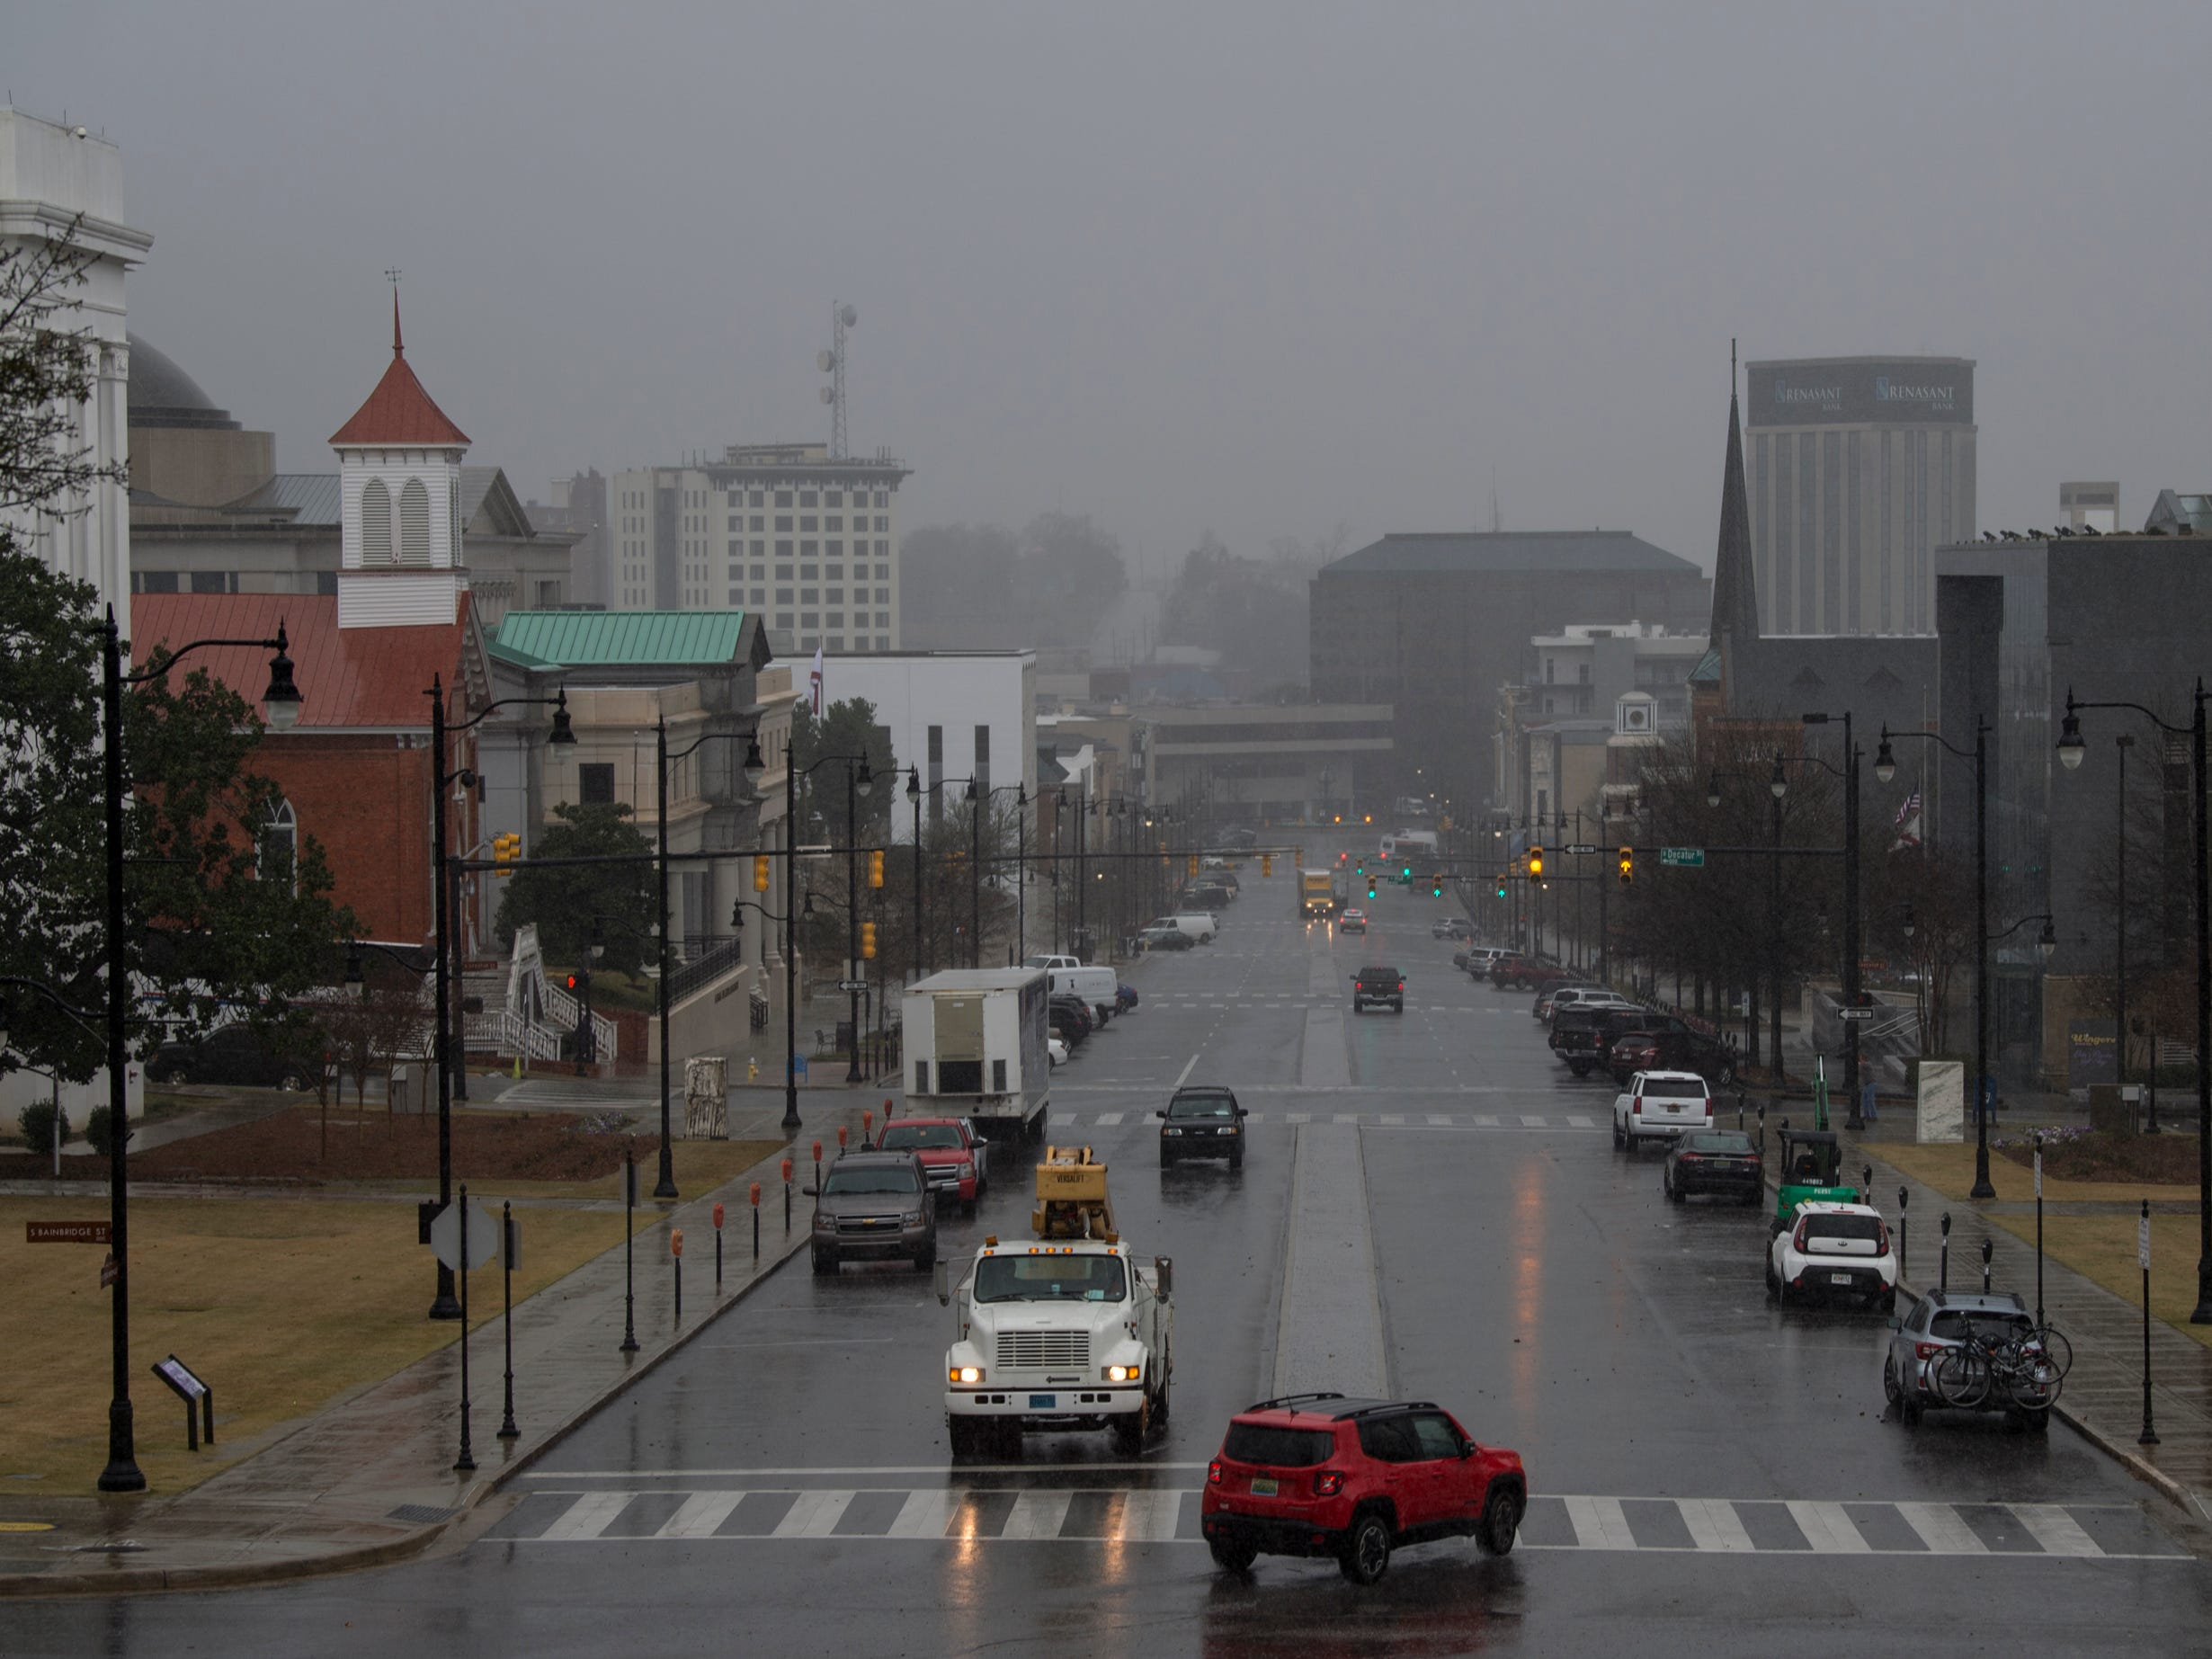 Rainy weather seen down Dexter Ave. in Montgomery, Ala., on Tuesday, Feb. 12, 2019.